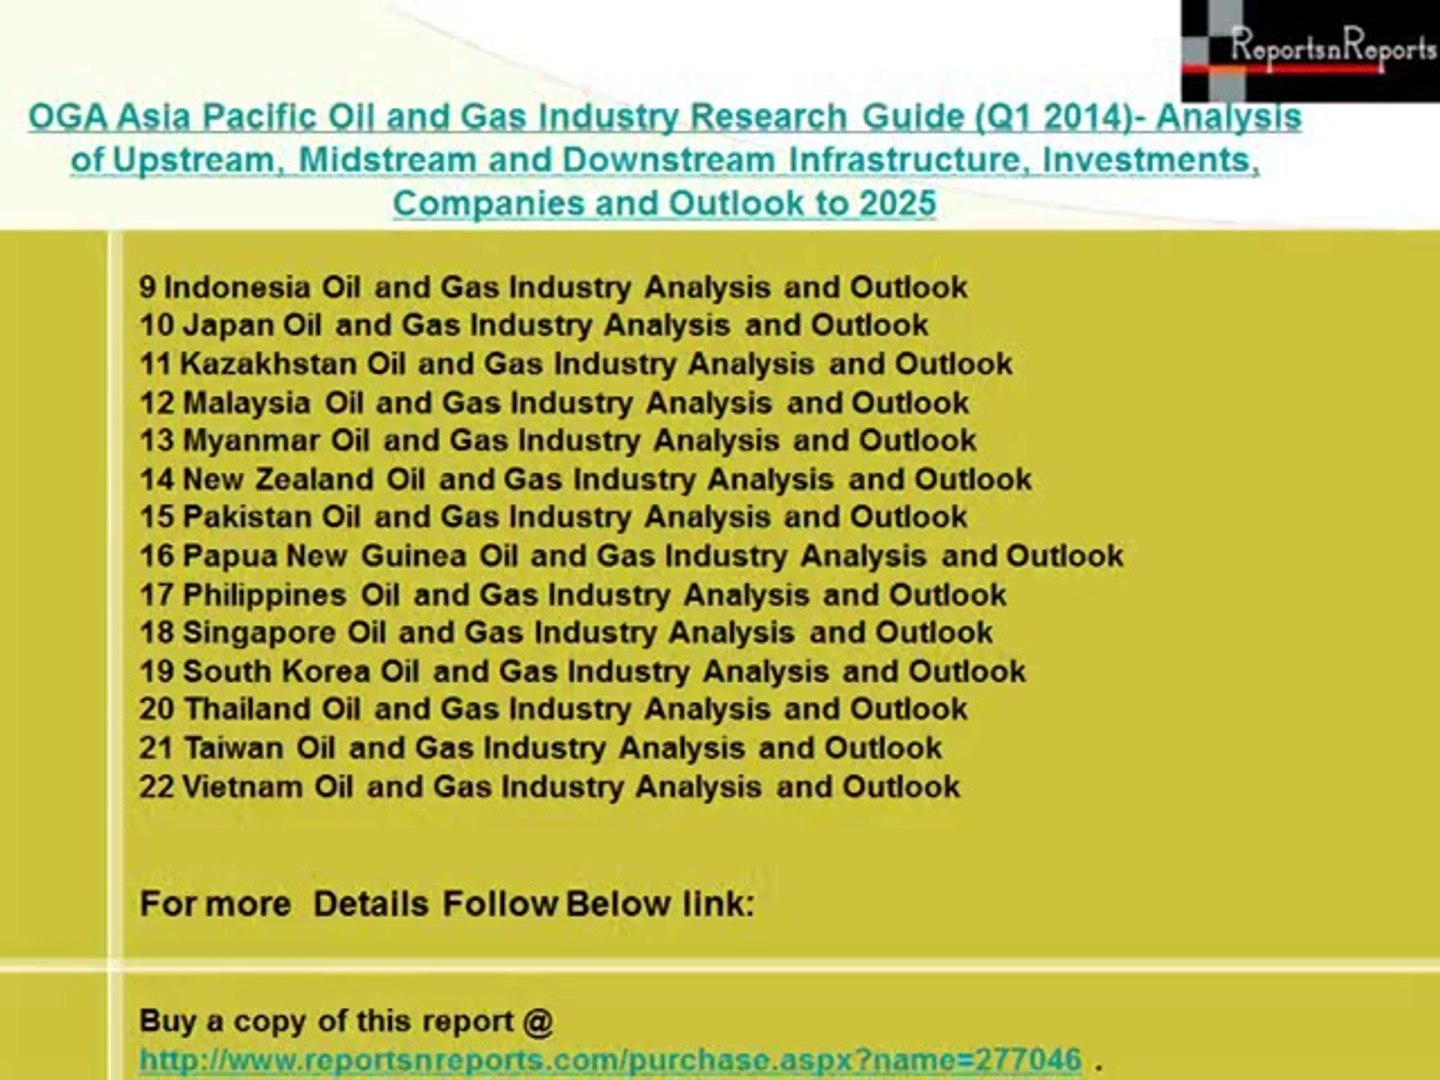 OGA Asia Pacific Oil and Gas Industry Research Guide (Q1 2014)- Analysis of Upstream, Midstream and